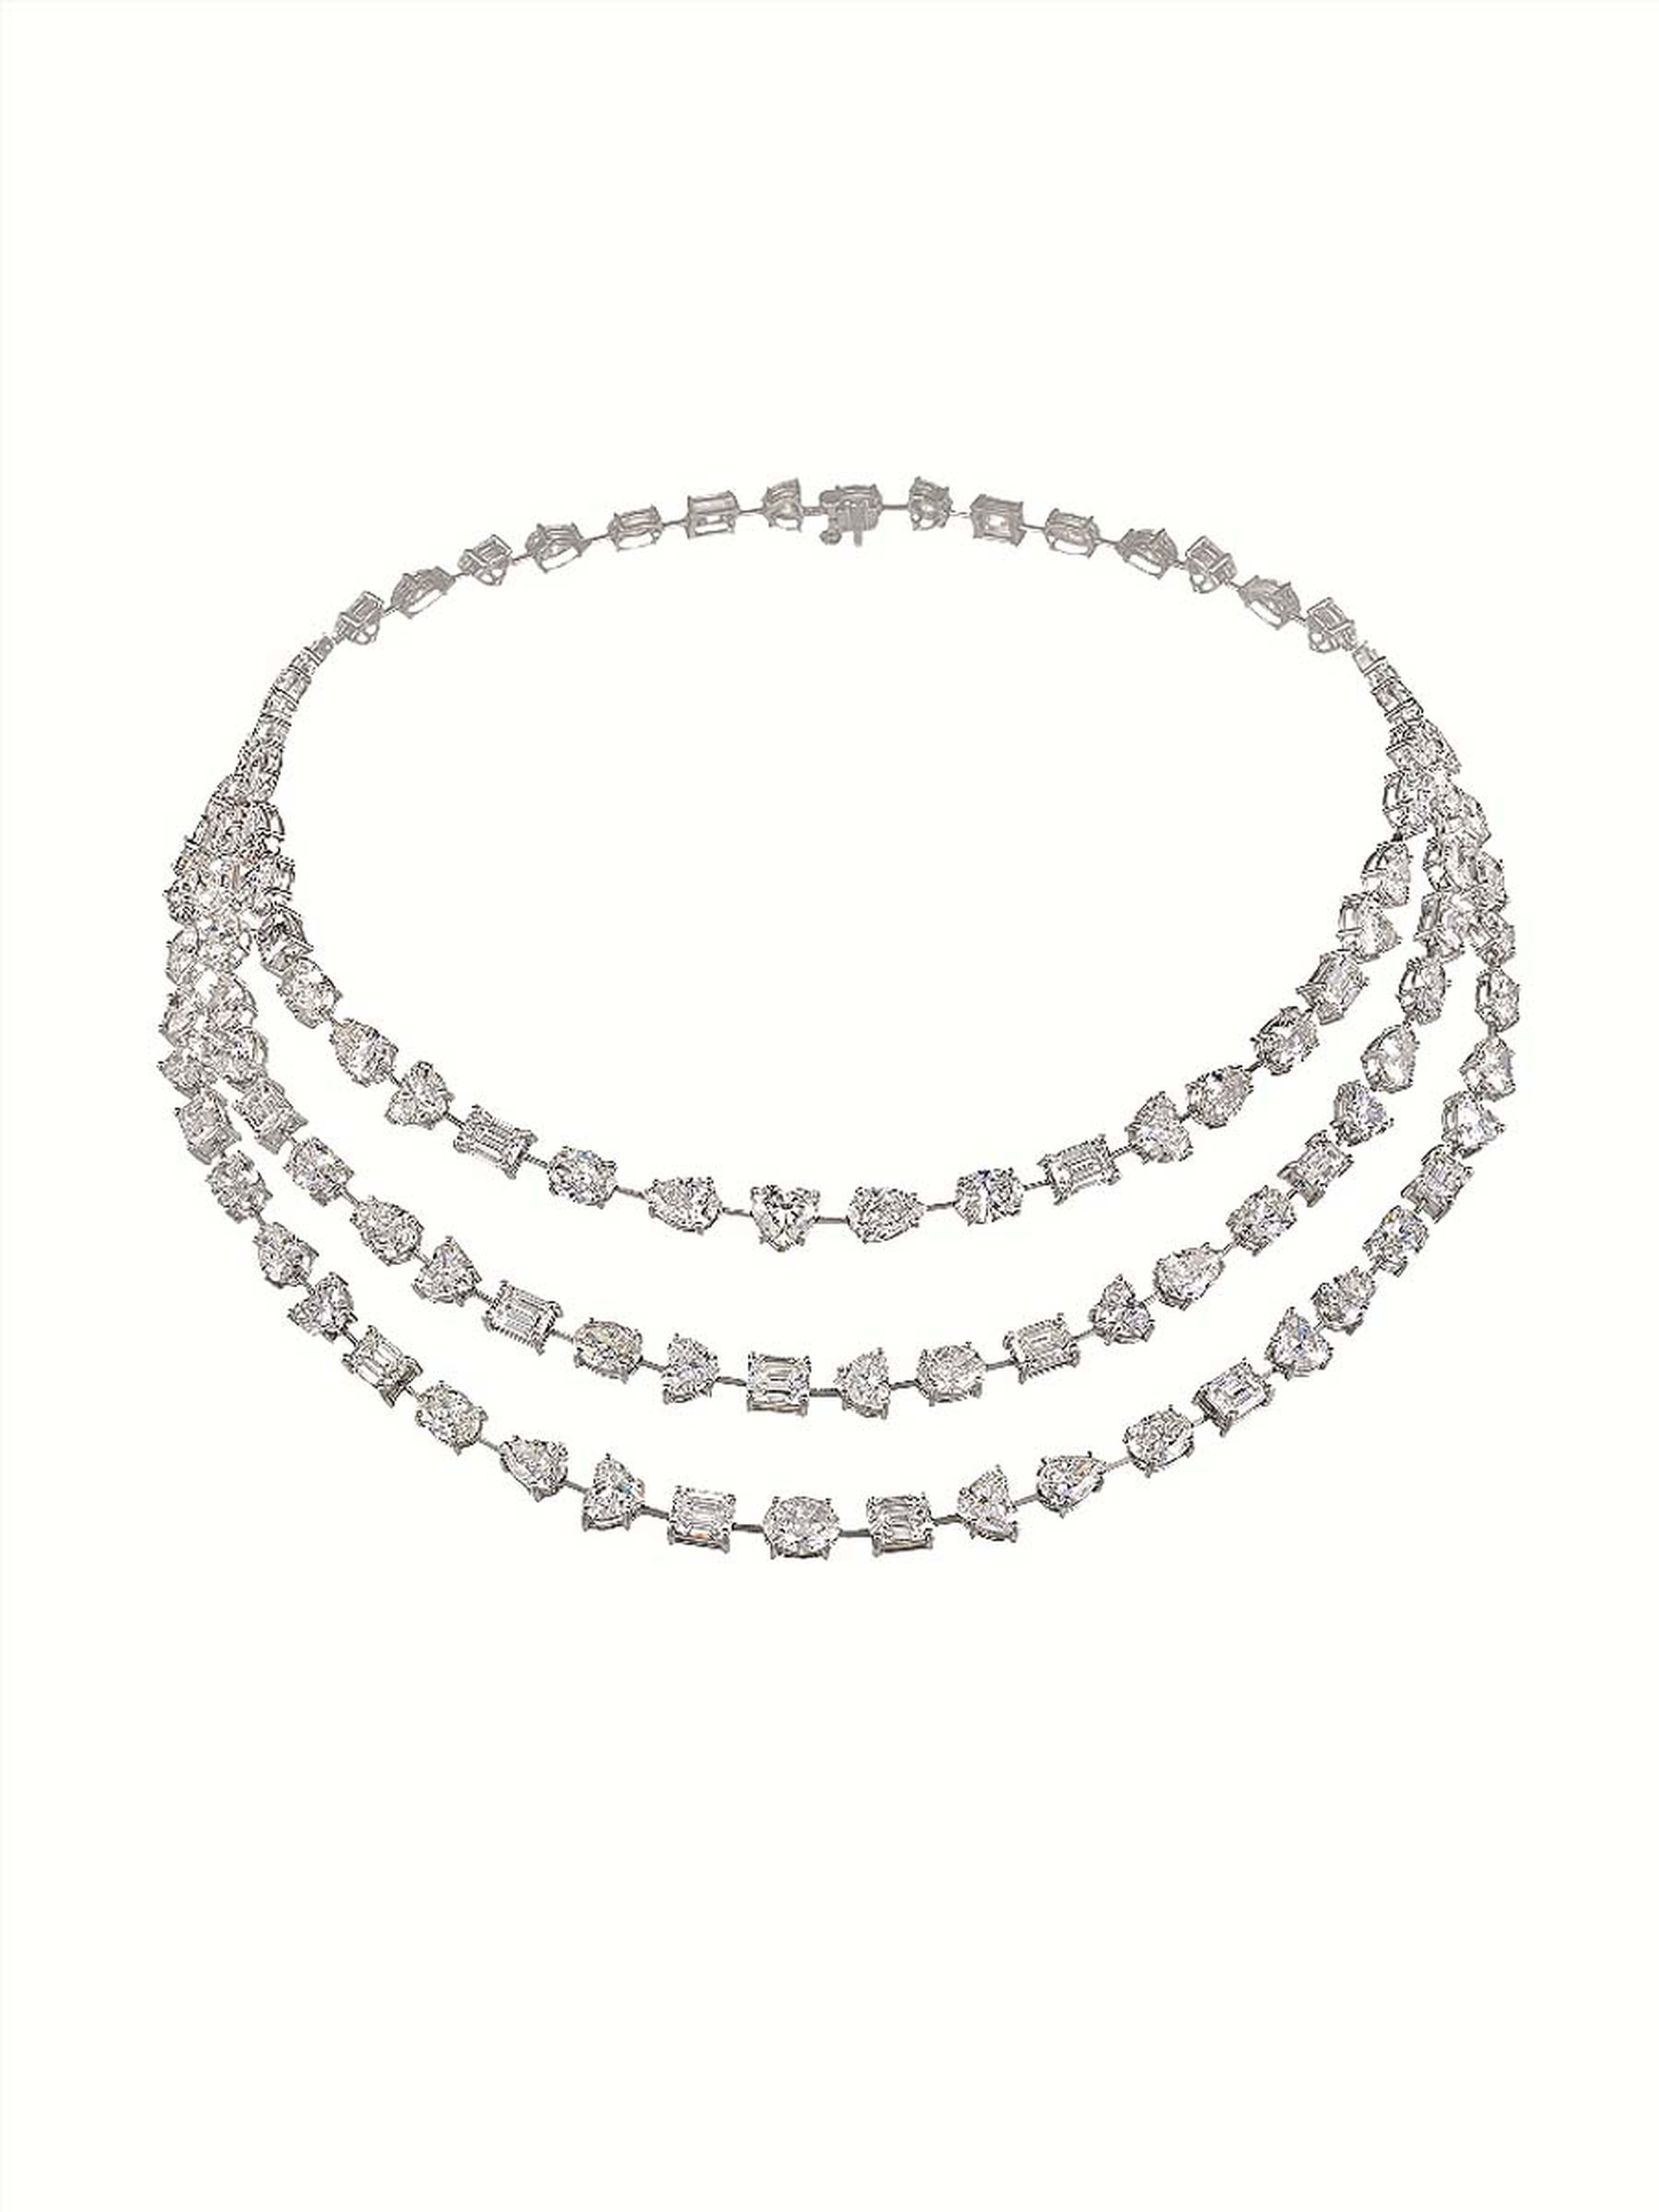 ChopardDianaFilmjewels001